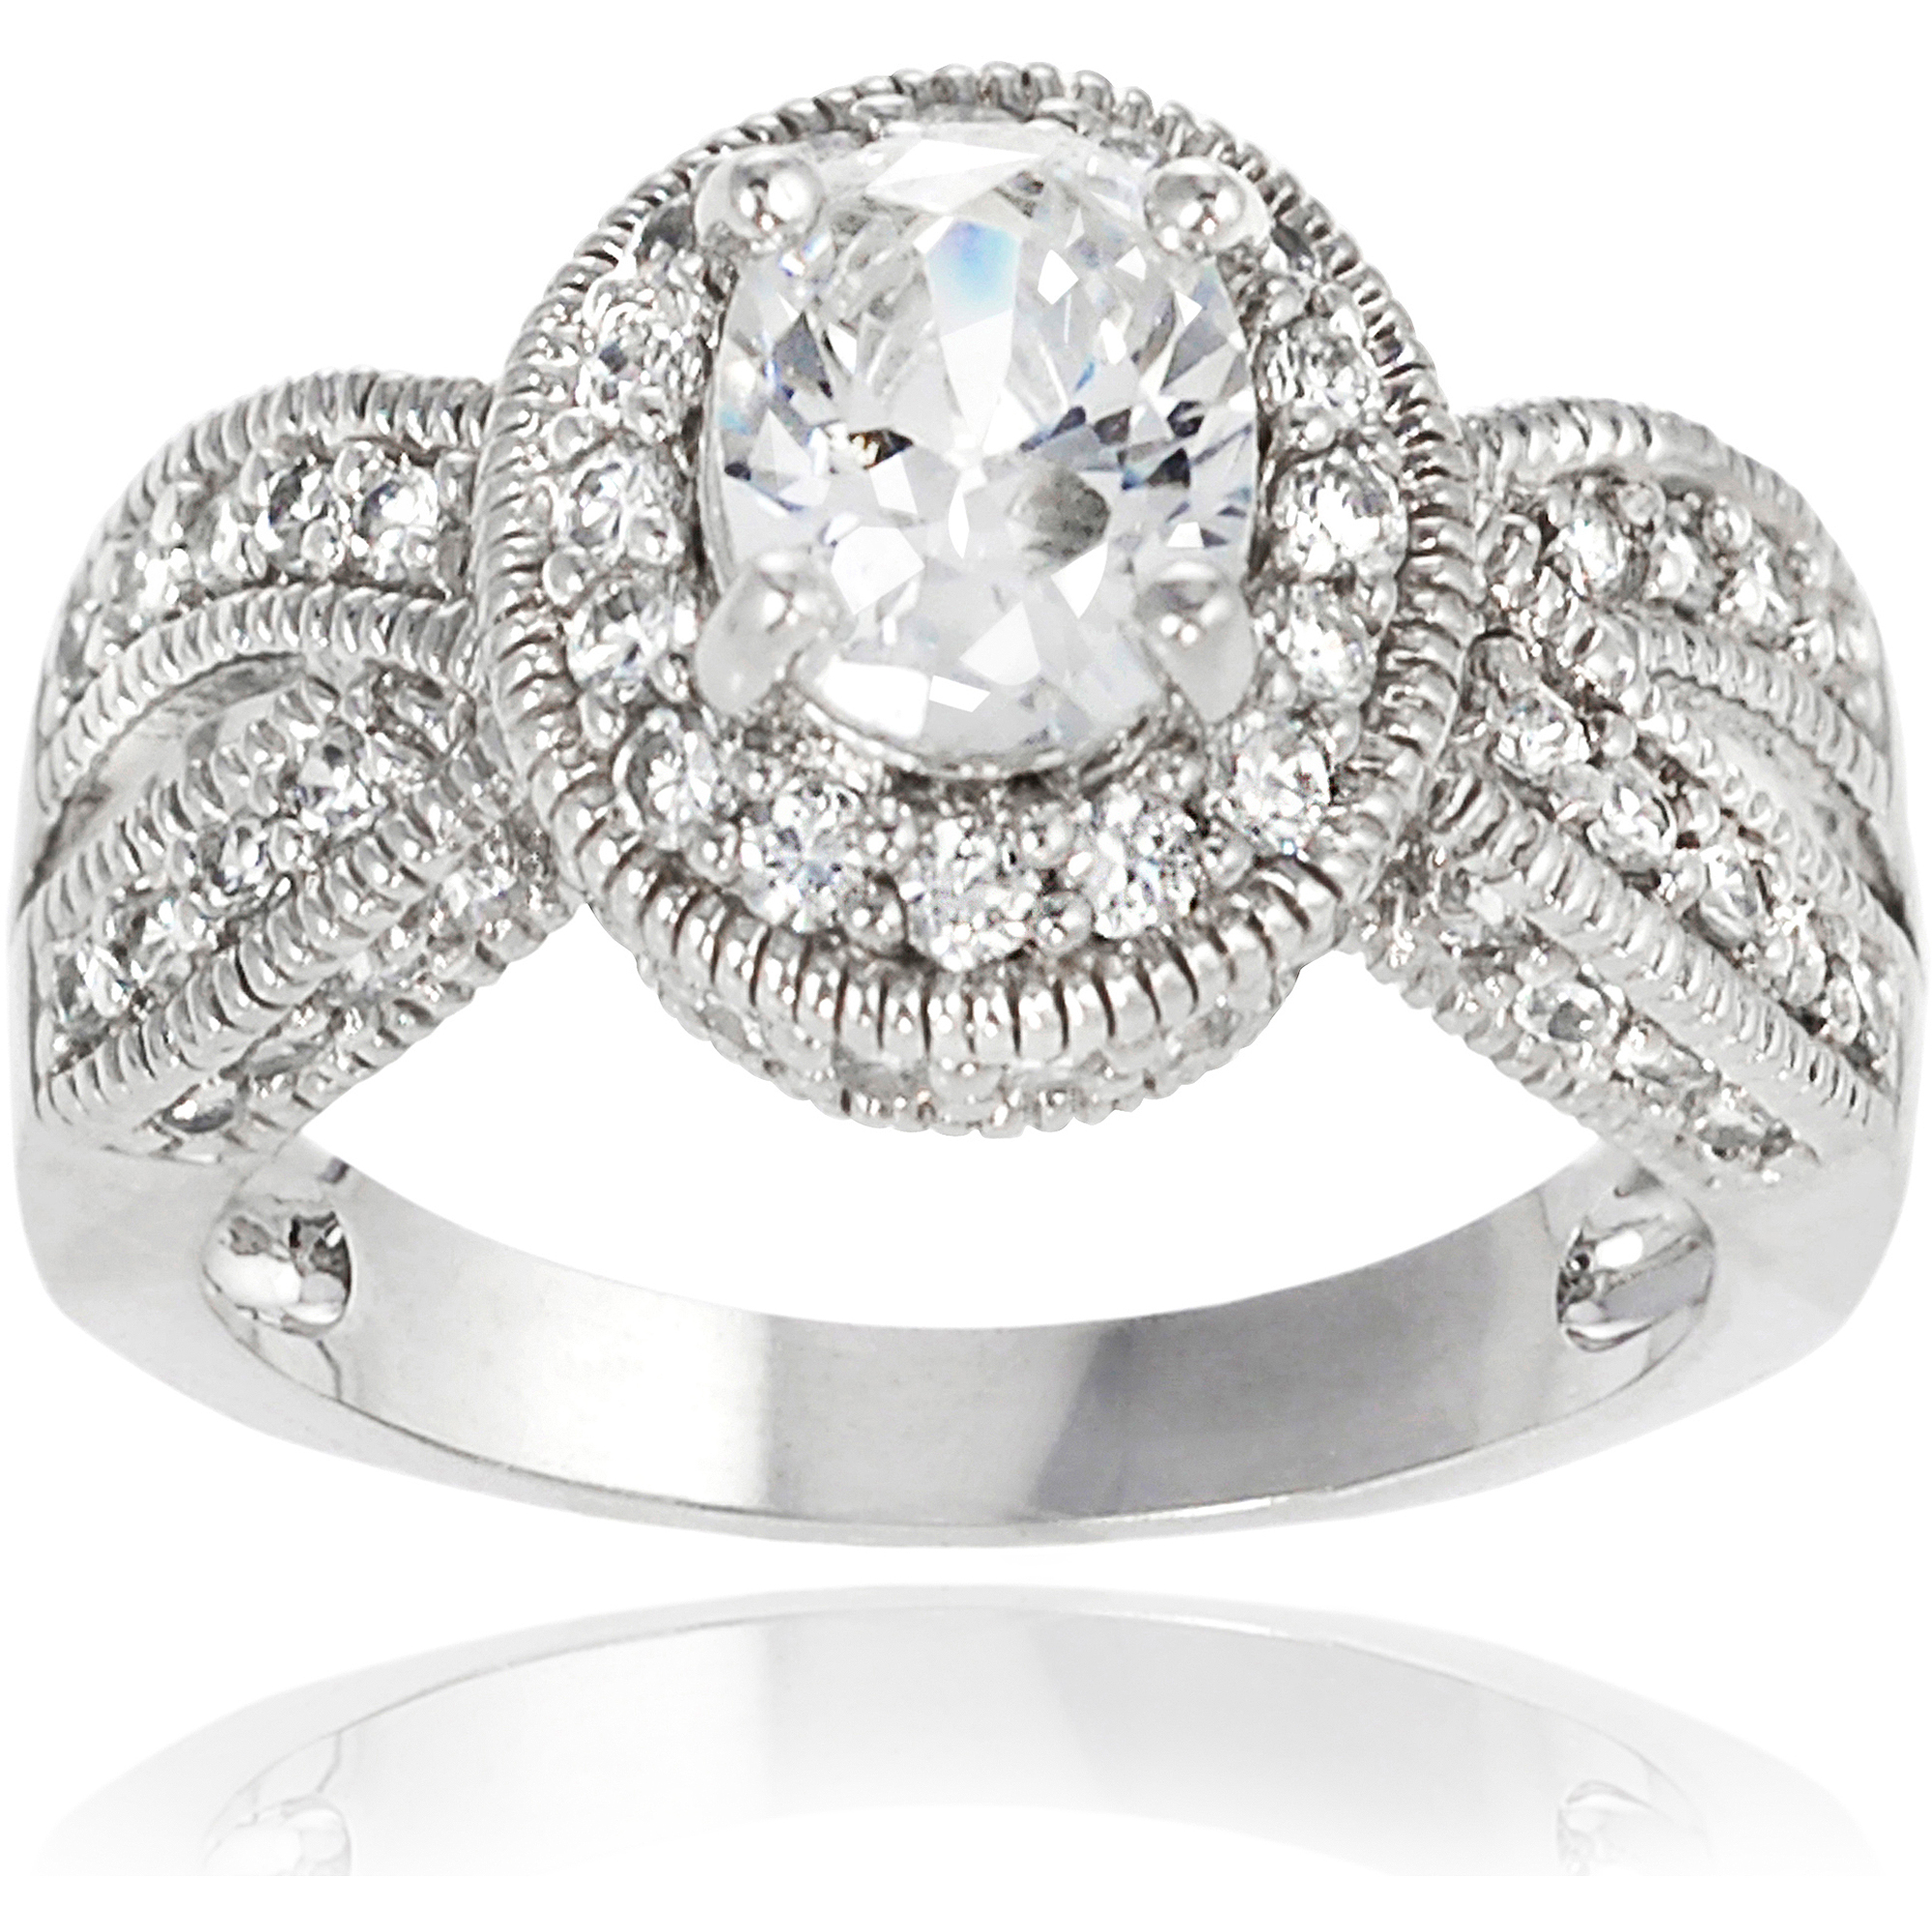 Alexandria Collection Sterling Silver Oval Cubic Zirconia Engagement Ring